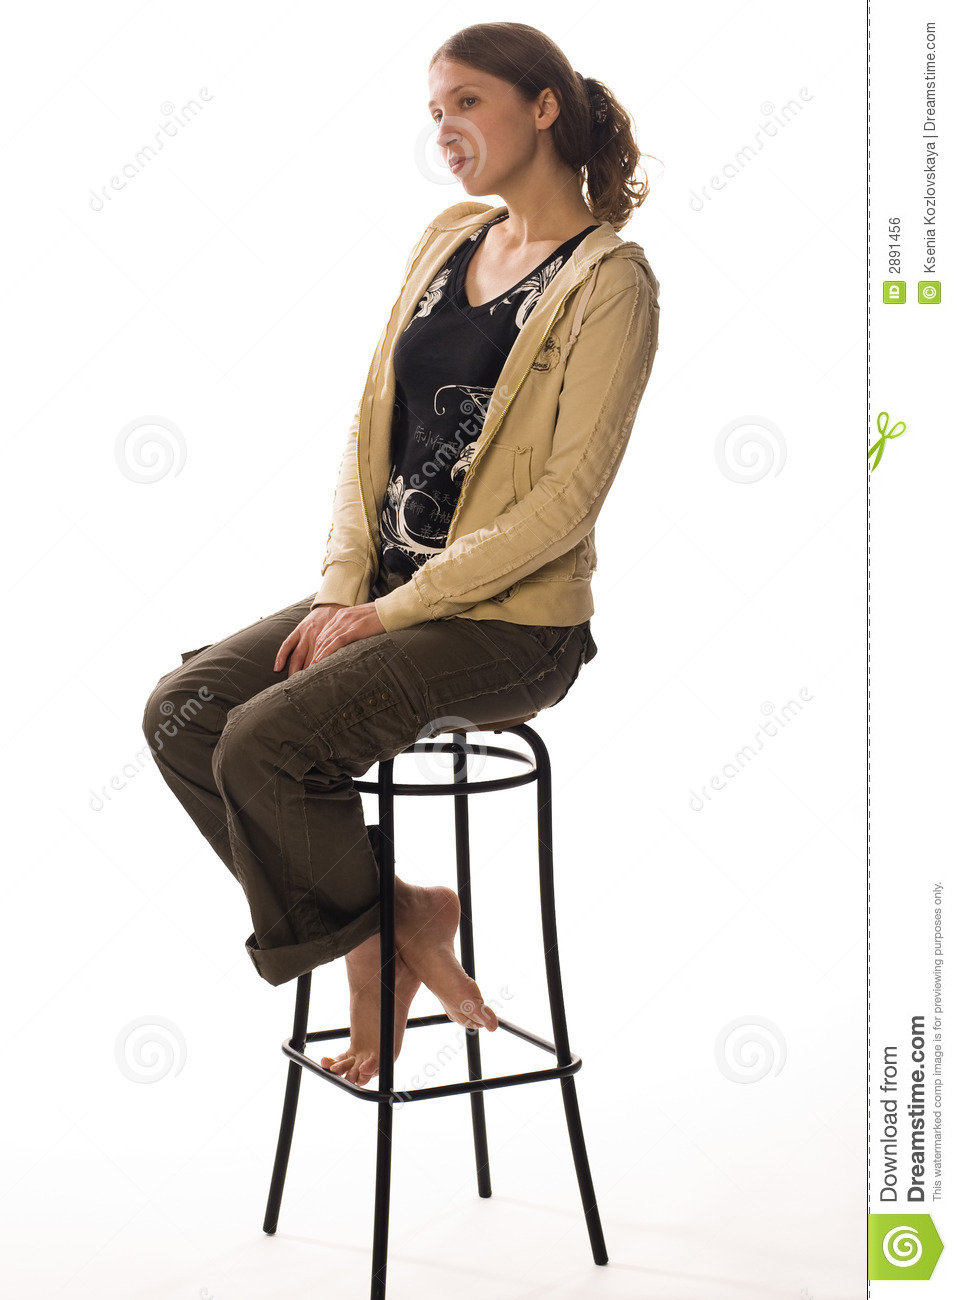 sad-girl-sits-stool-2891456.jpg